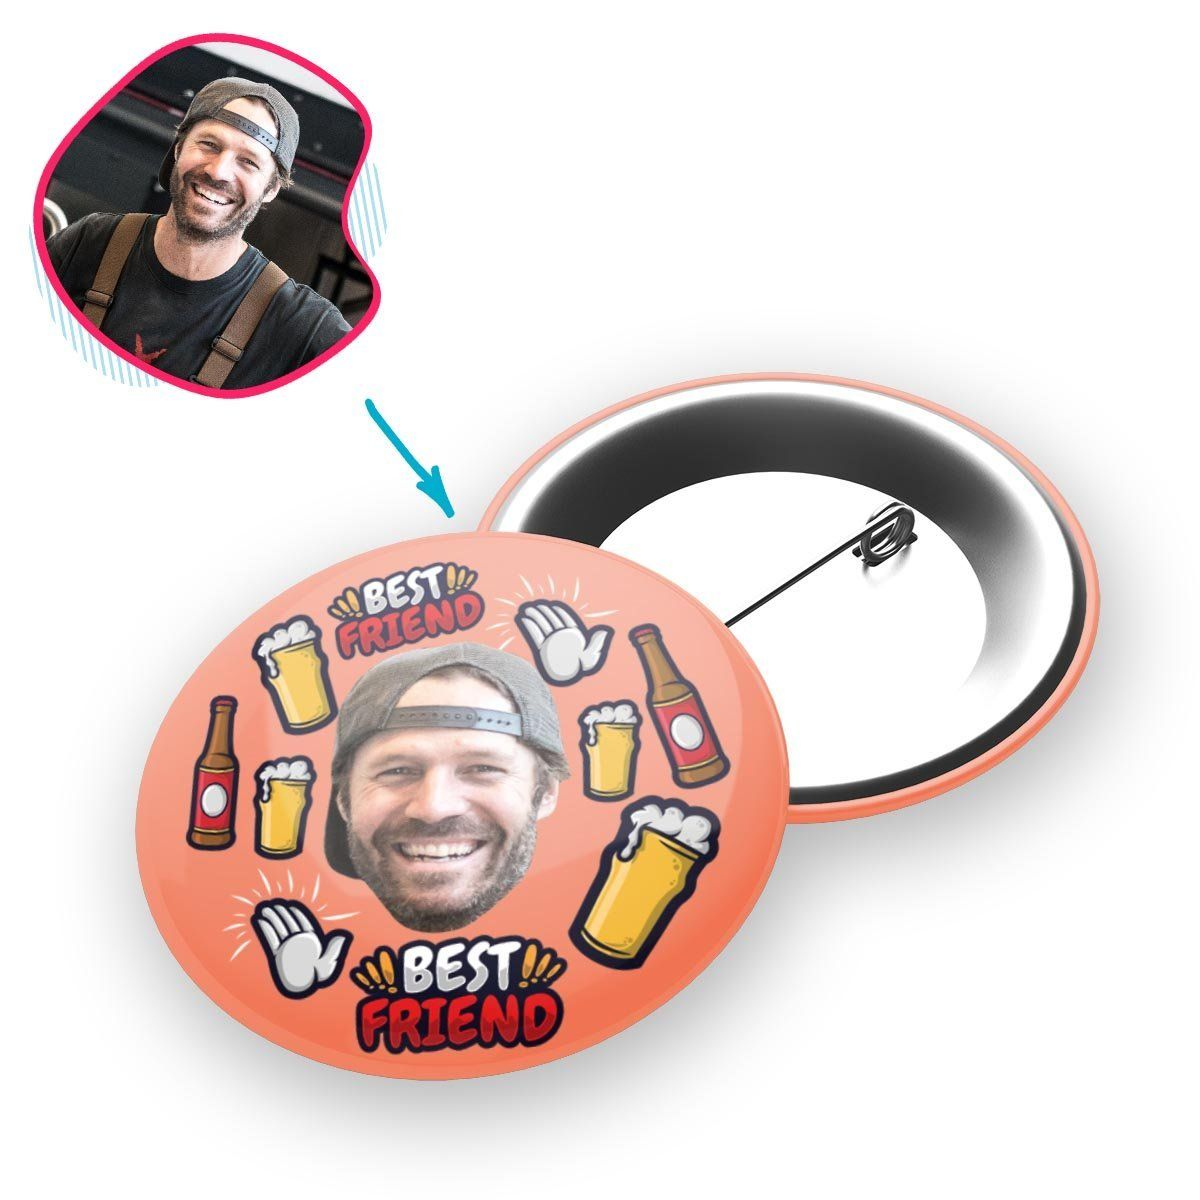 salmon BFF for Him pin personalized with photo of face printed on it